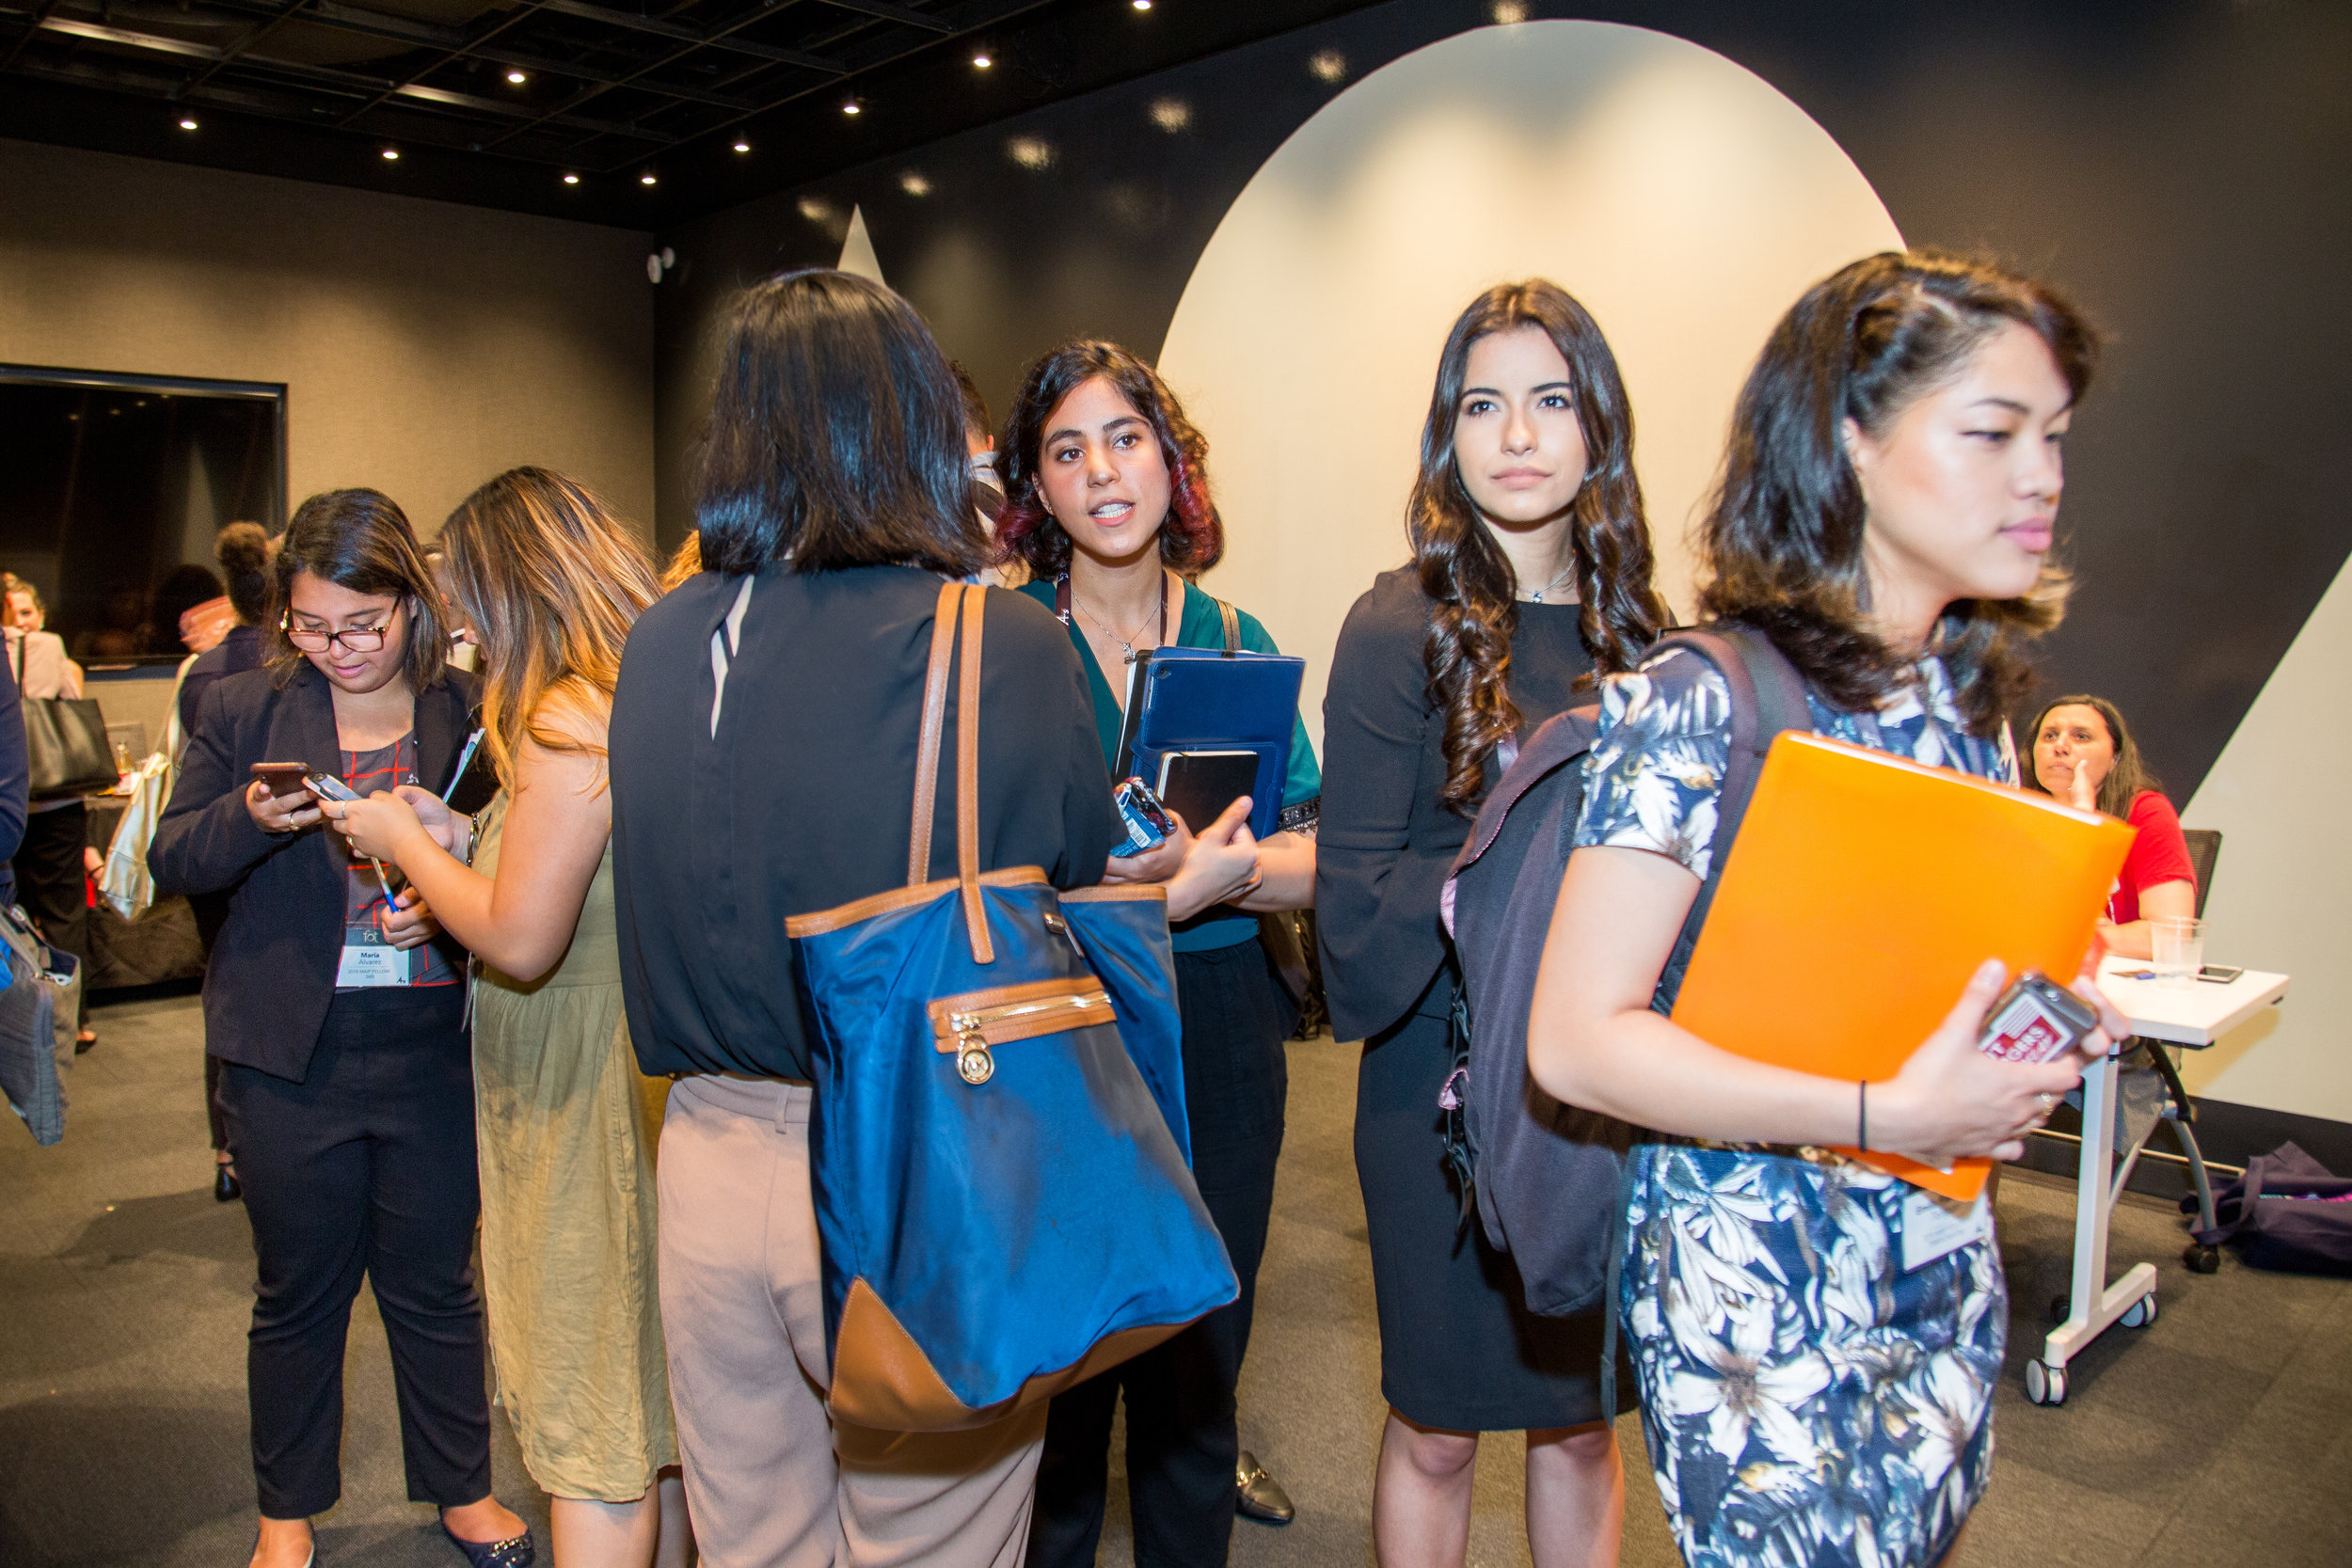 4As_MAIP_FOT_Career_Fair_2018_Margarita_Corporan-29.jpg